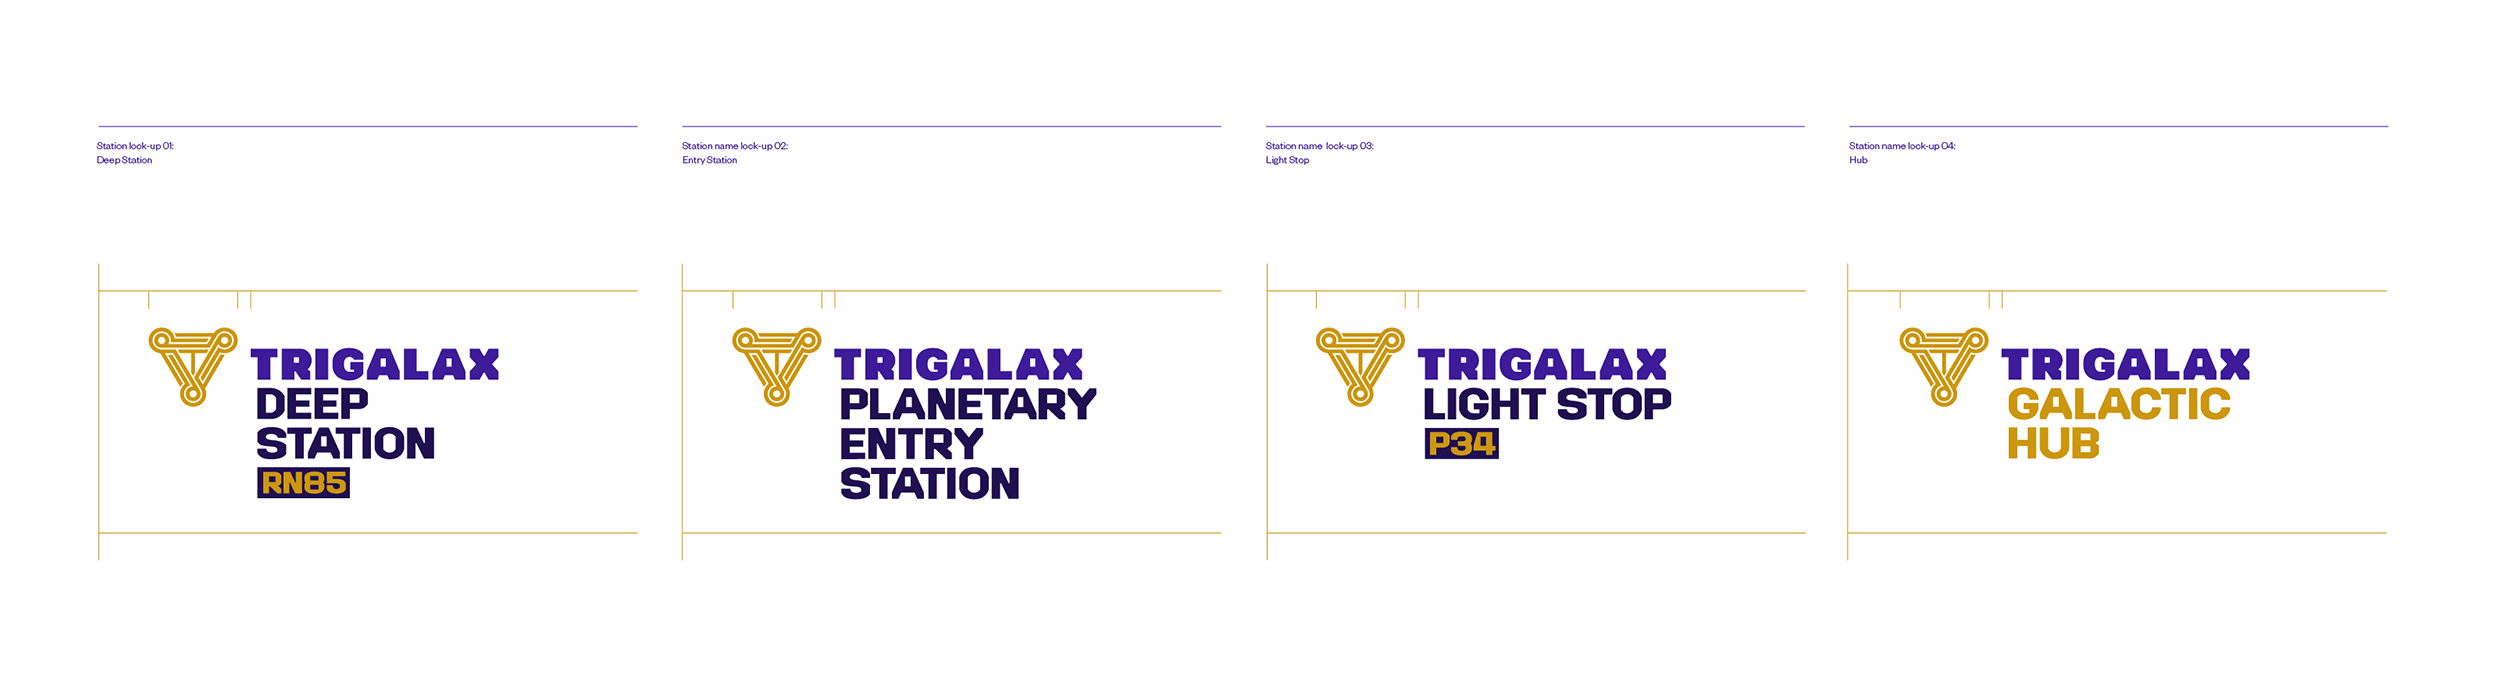 14_Trigalax-Space-Branding-Station-Lockups